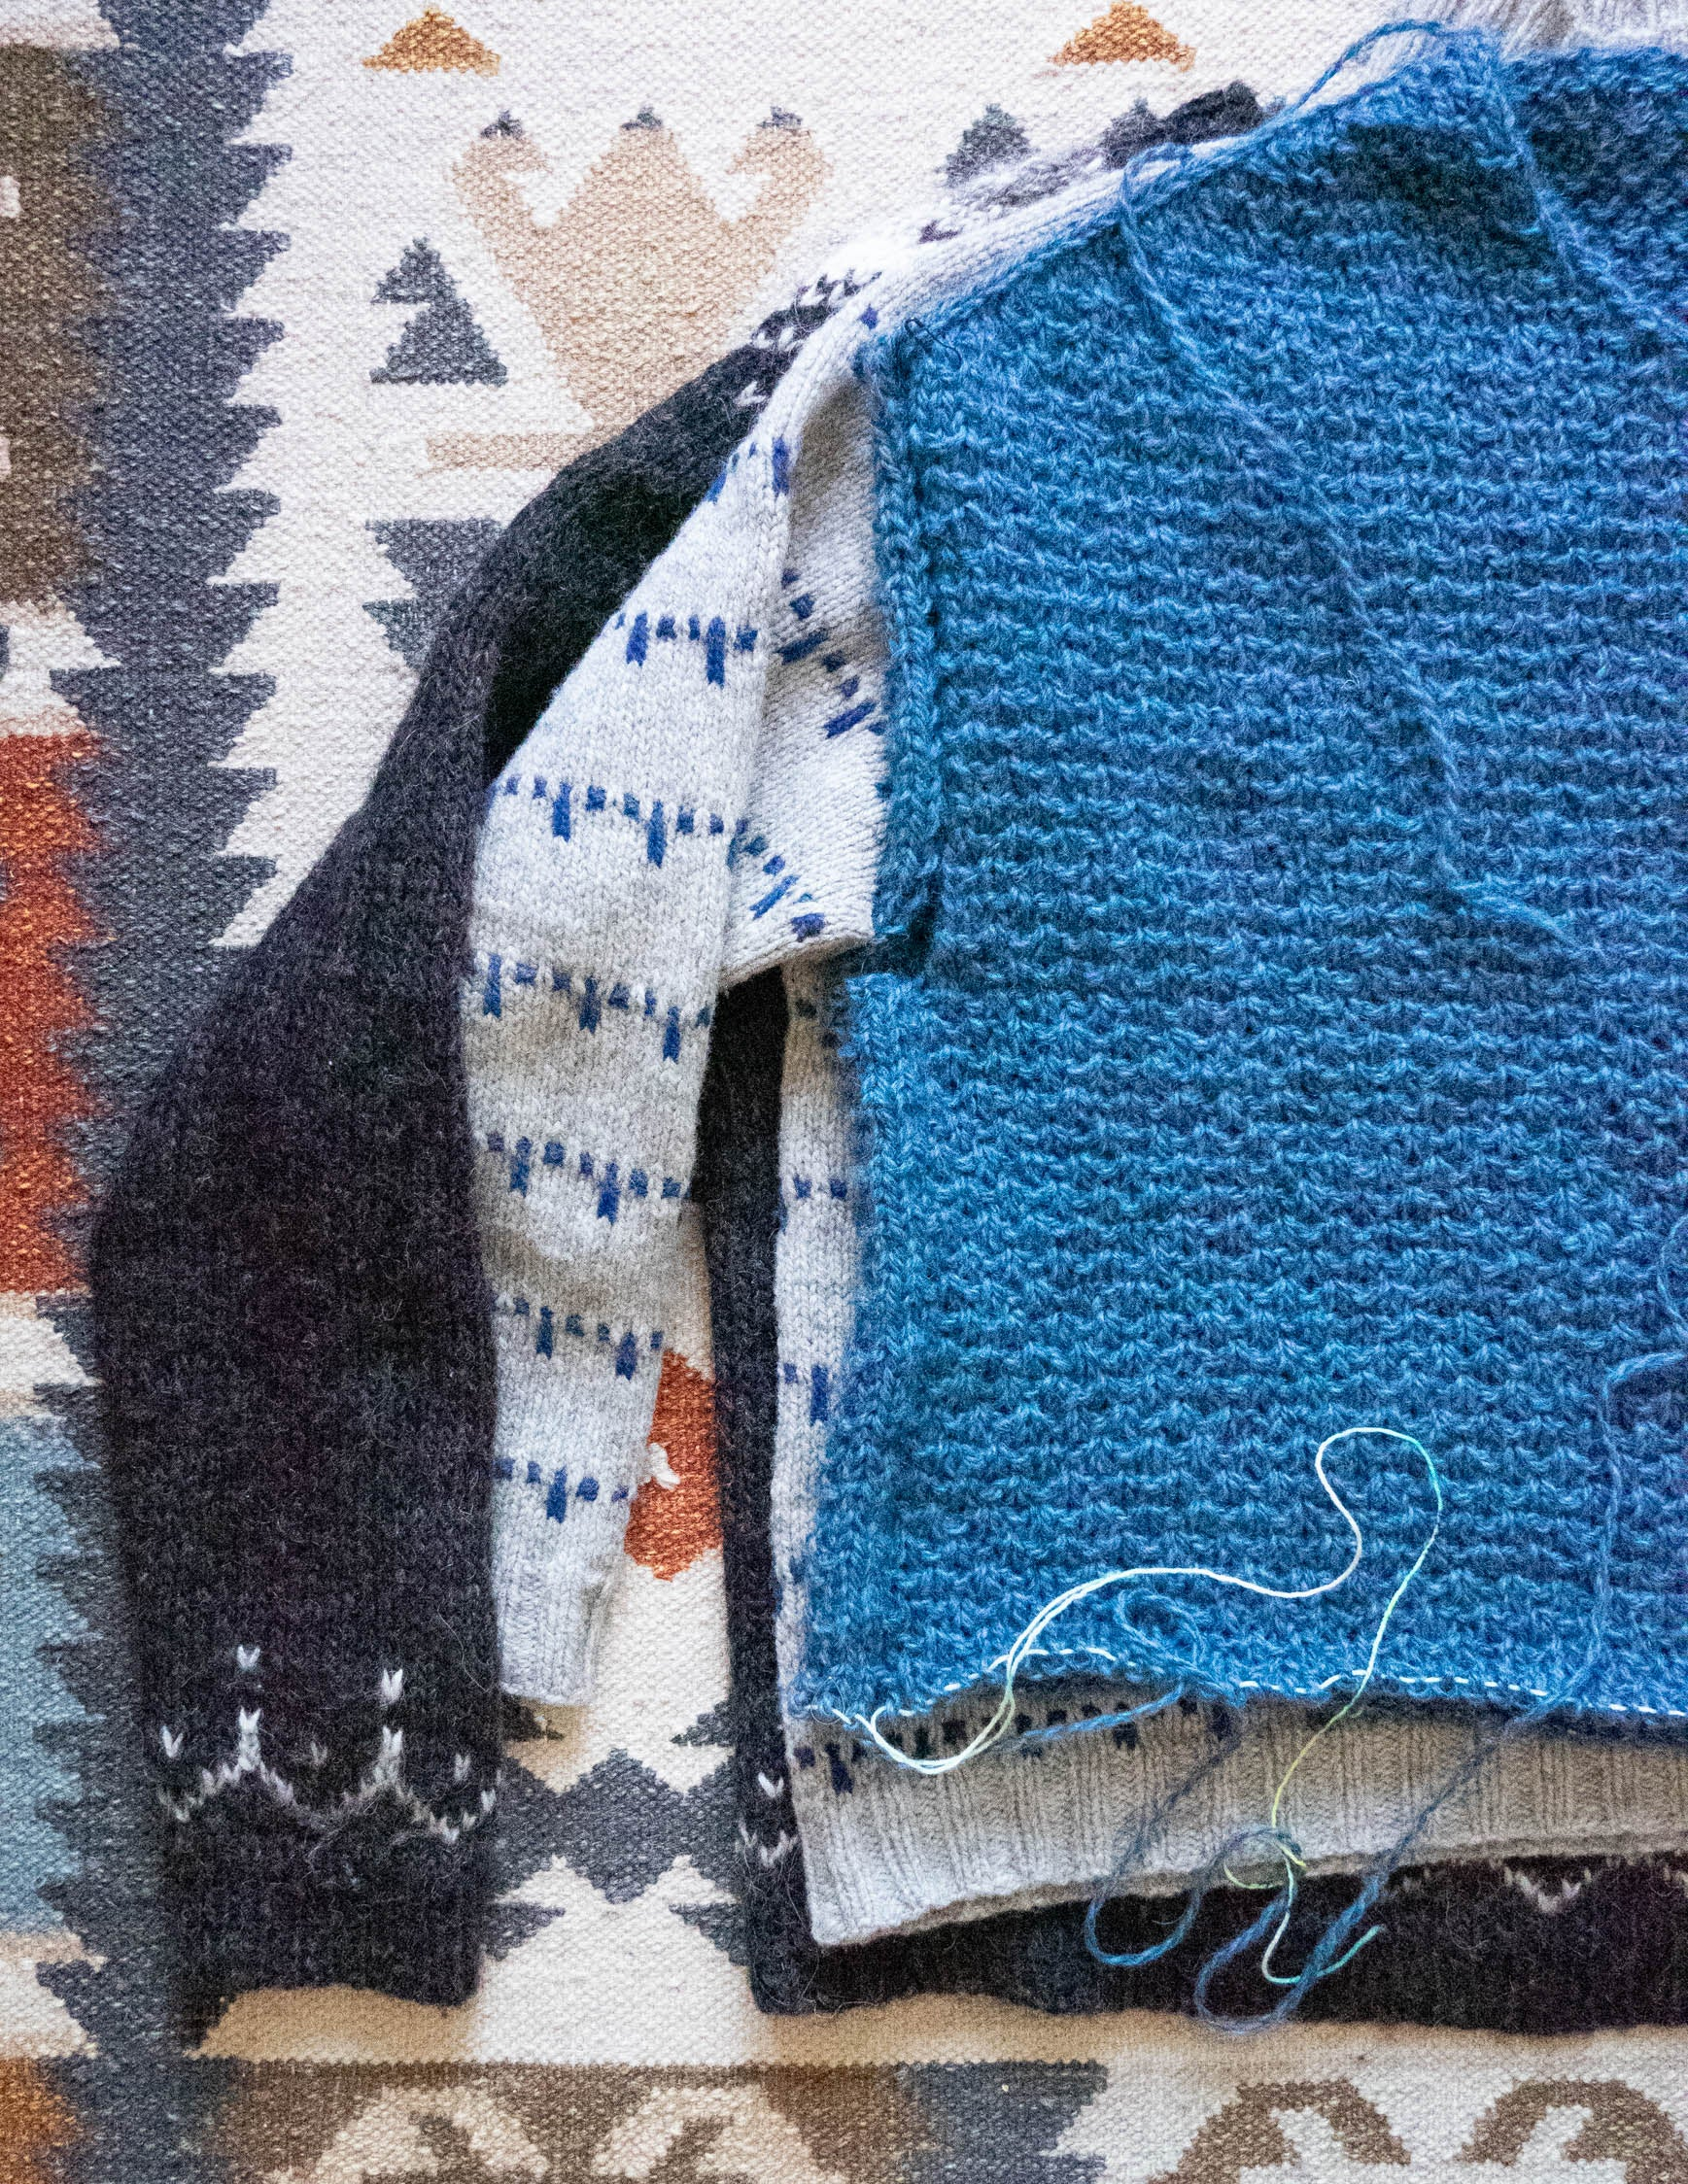 Flat lay image of 3 sweaters laid out on top of each other, to compare the length from underarm to bottom edge. The top sweater is blue and is unfinished at the bottom edge.